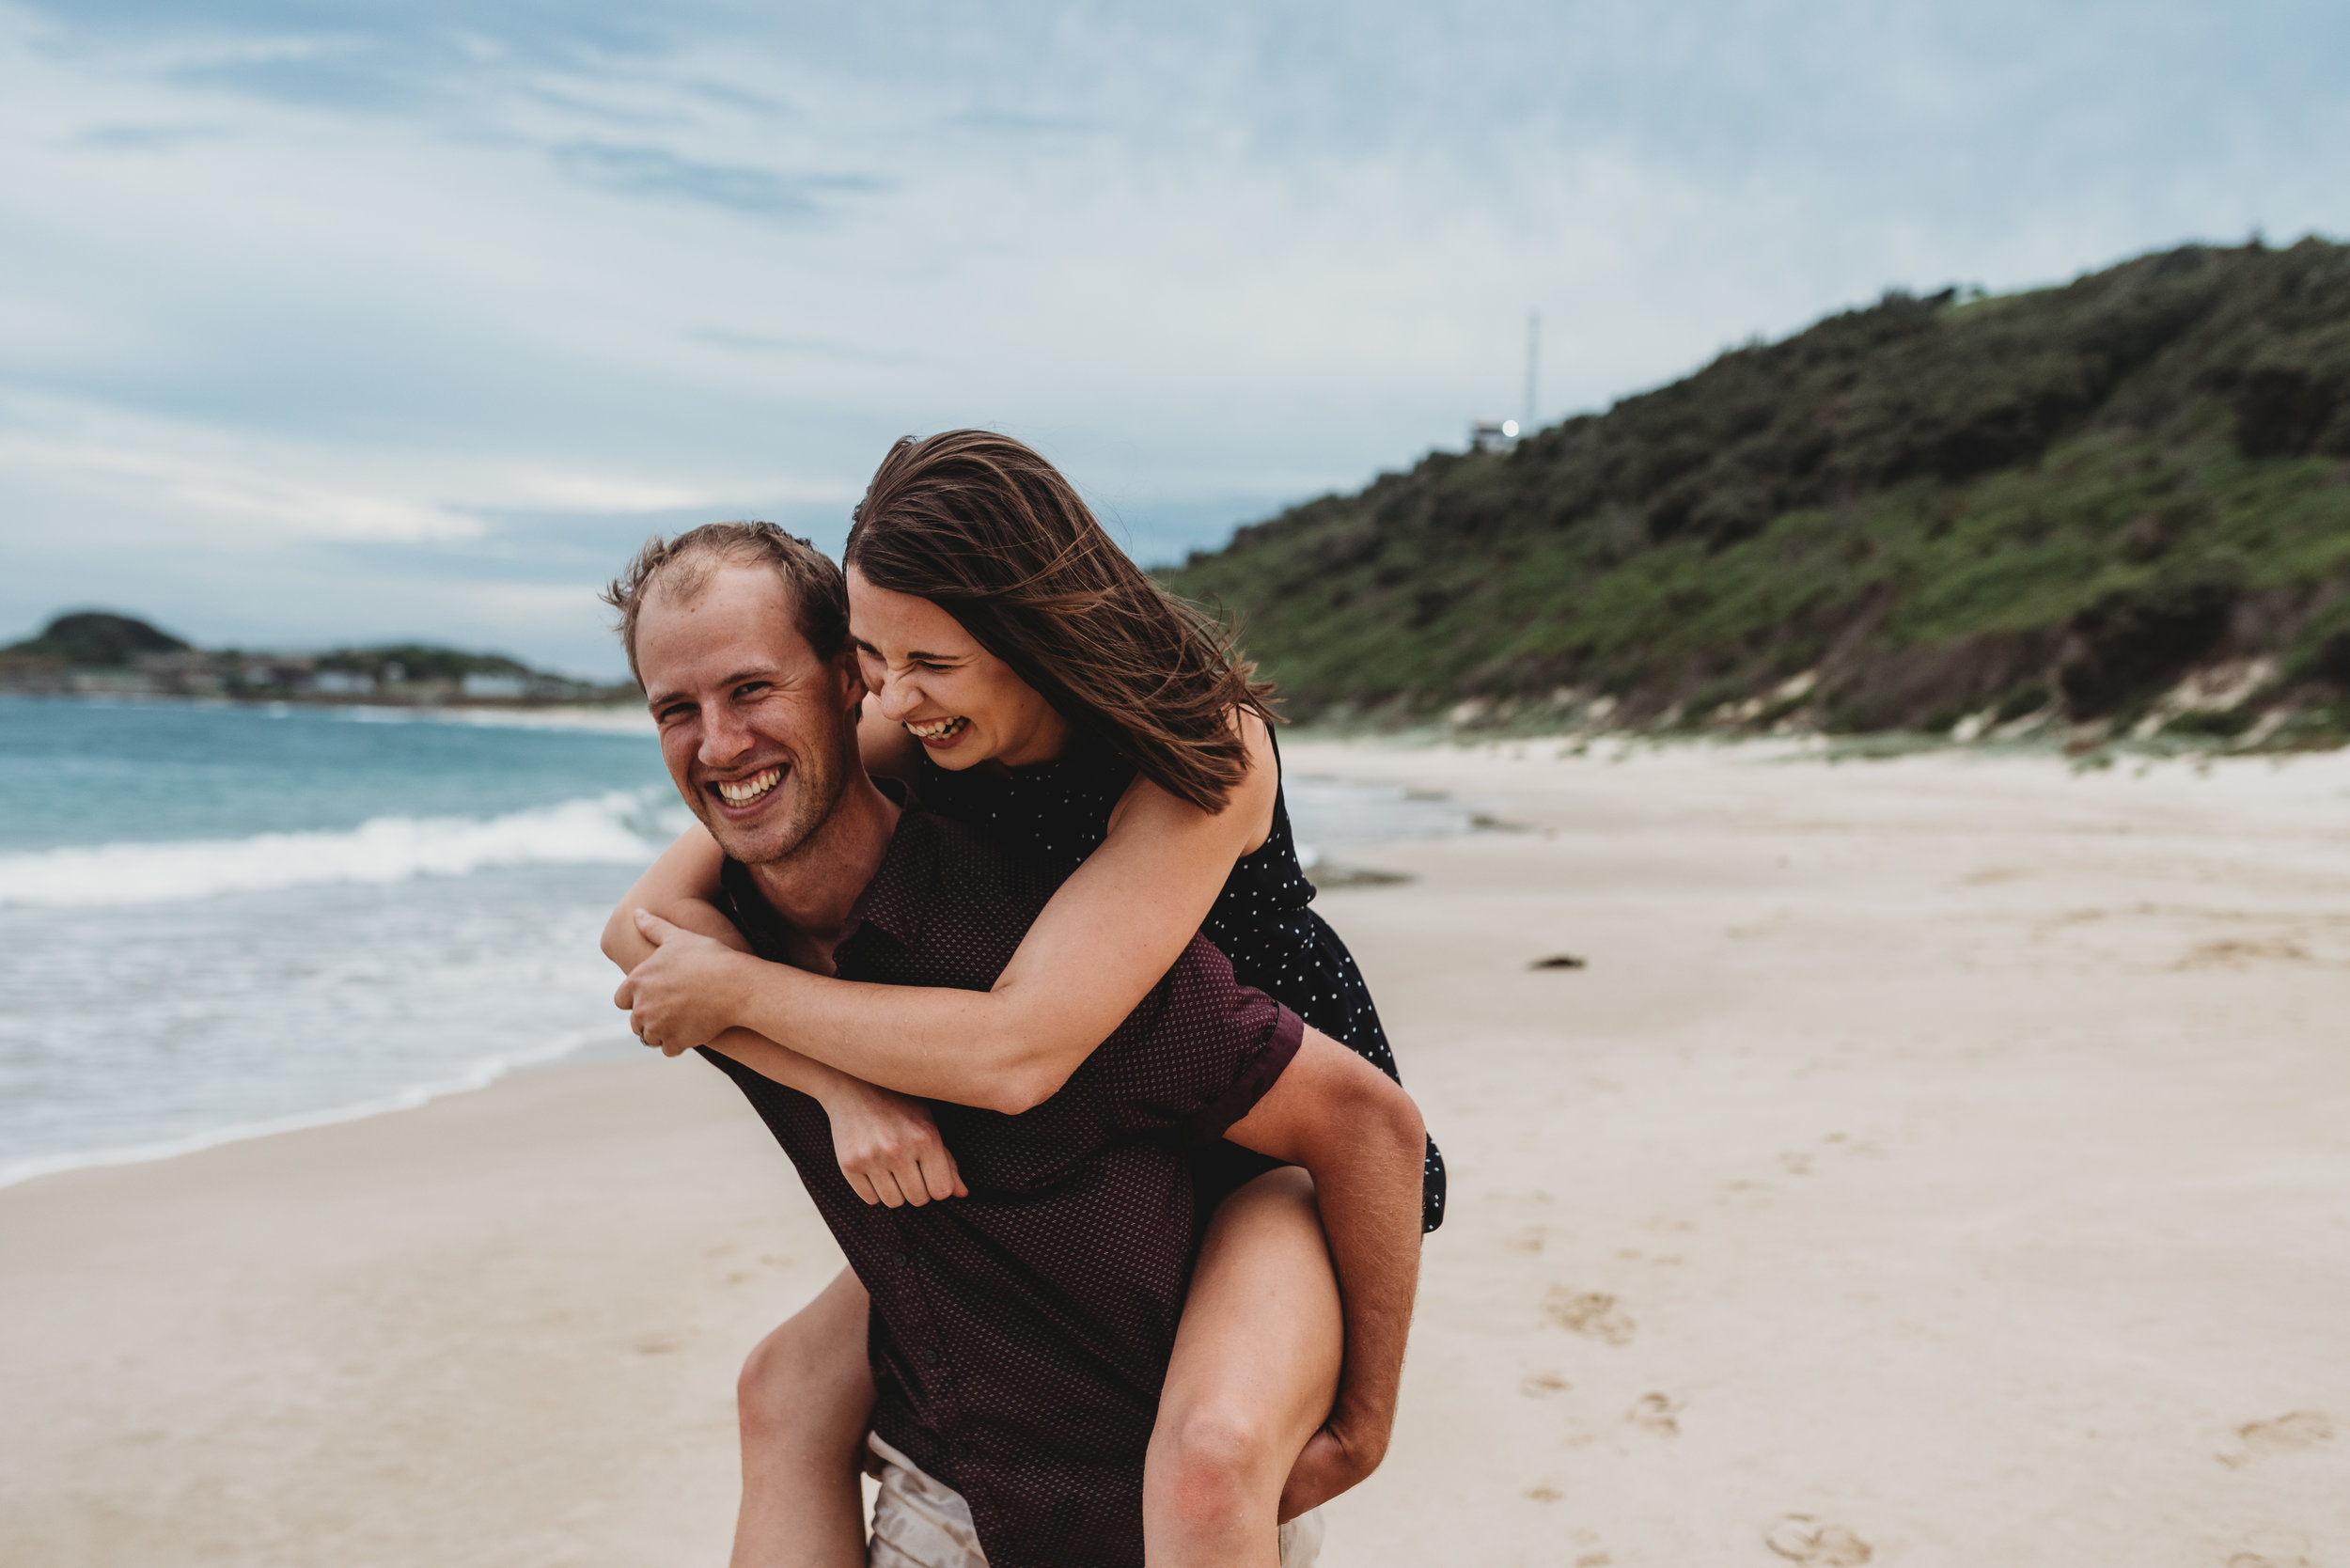 Christine & Jeff - Wollongong Beach Engagement     29th March 2019